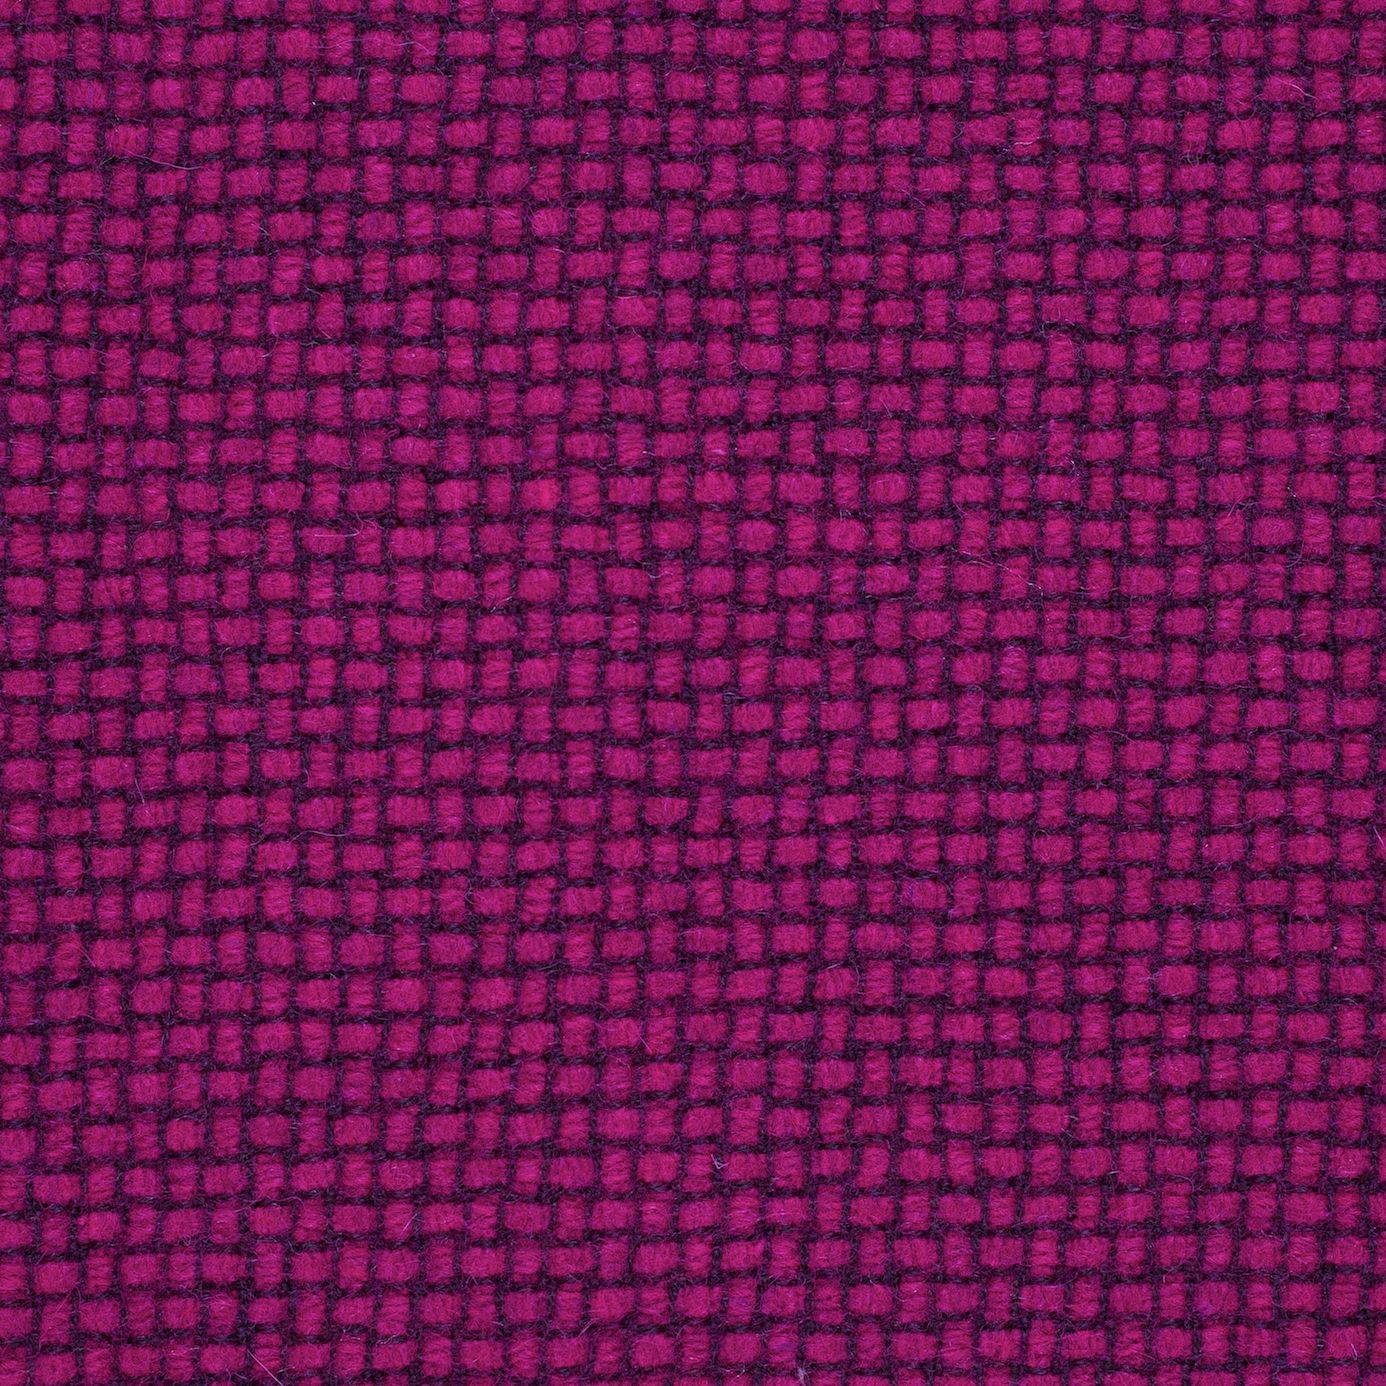 Bind fabric magenta 130656 harlequin momentum 3 for Fabric material for sale